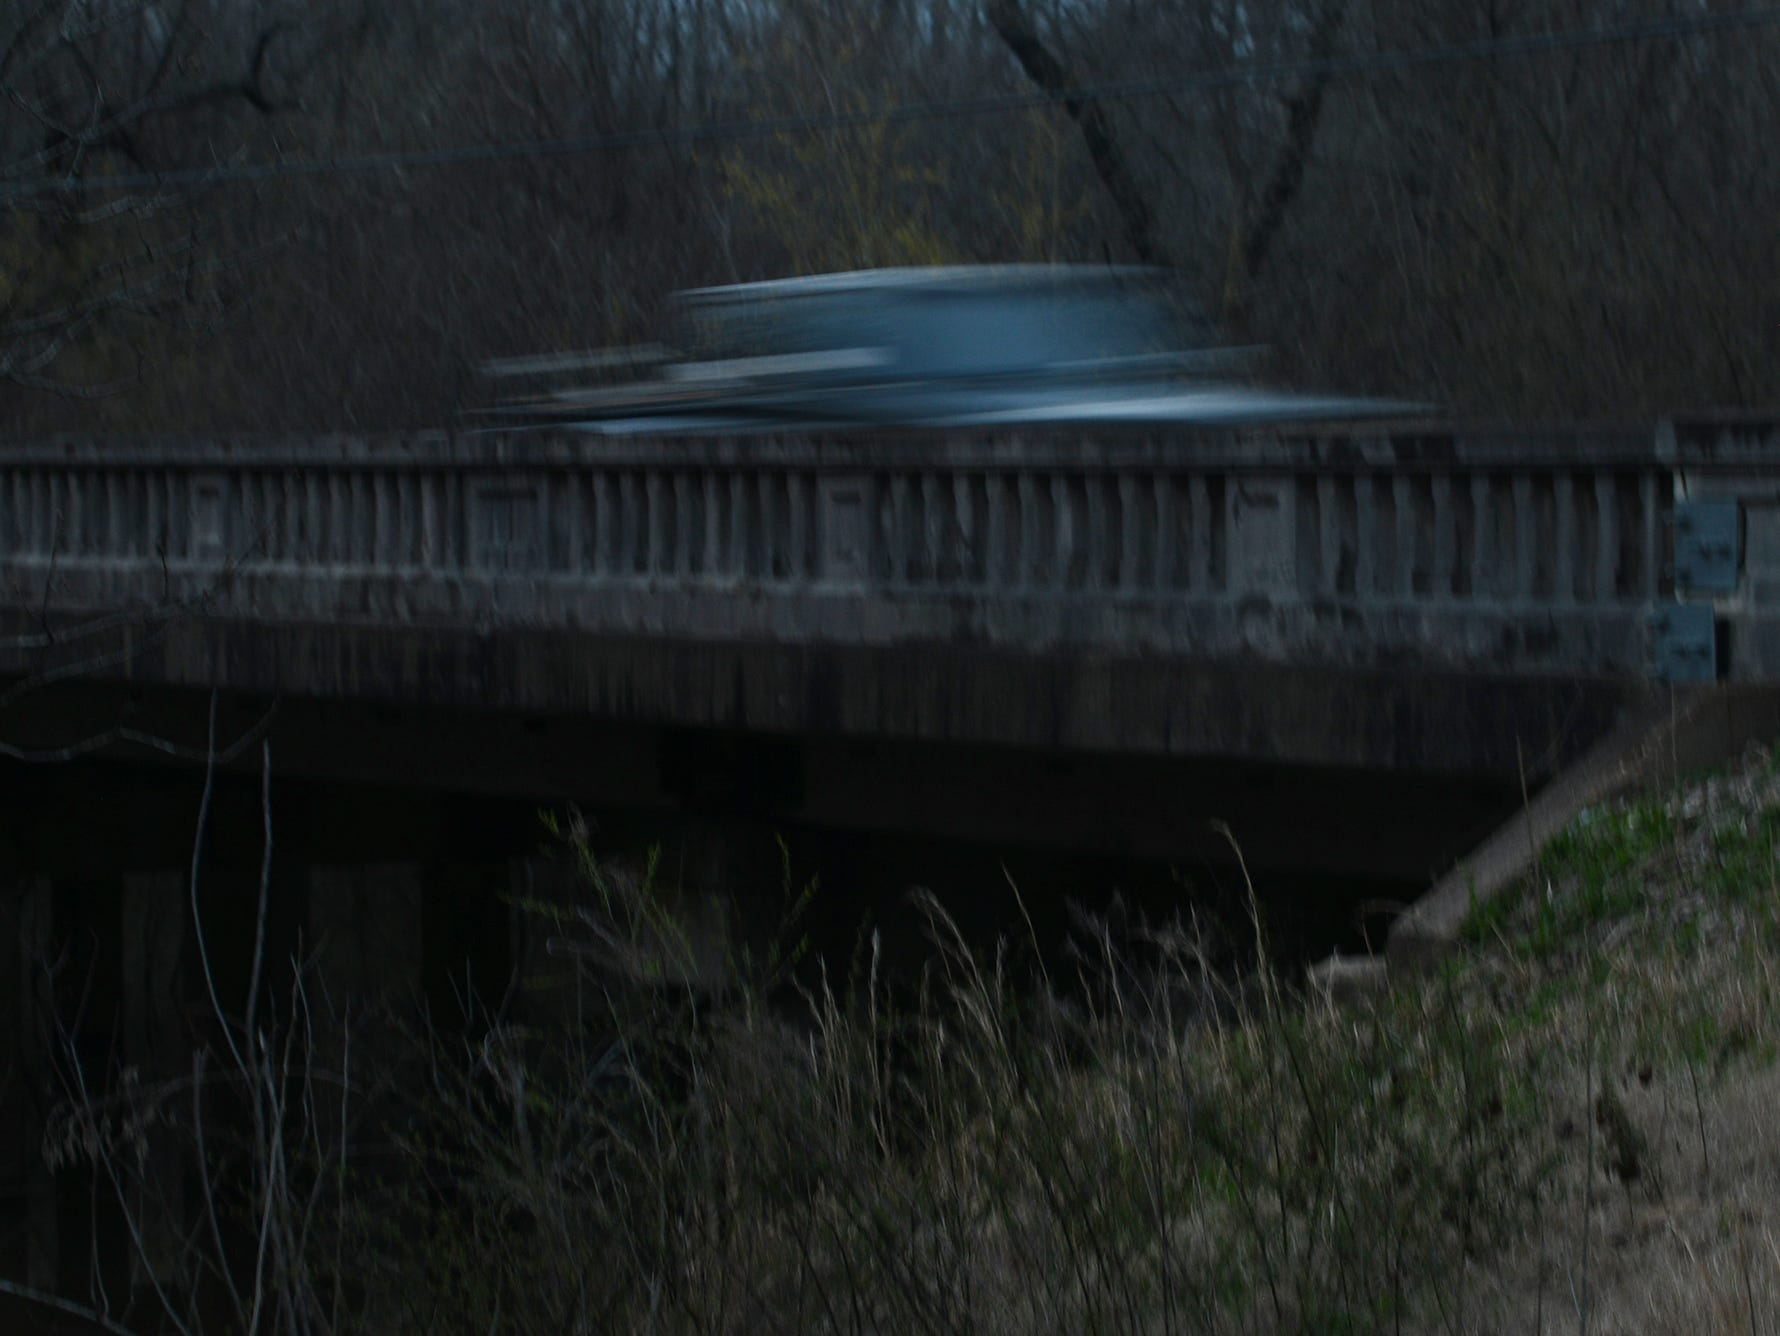 A car passes over a bridge on State Route 76 outside the Hatchie National Wildlife Preserve where Donna Perry's body was found in July 1986.